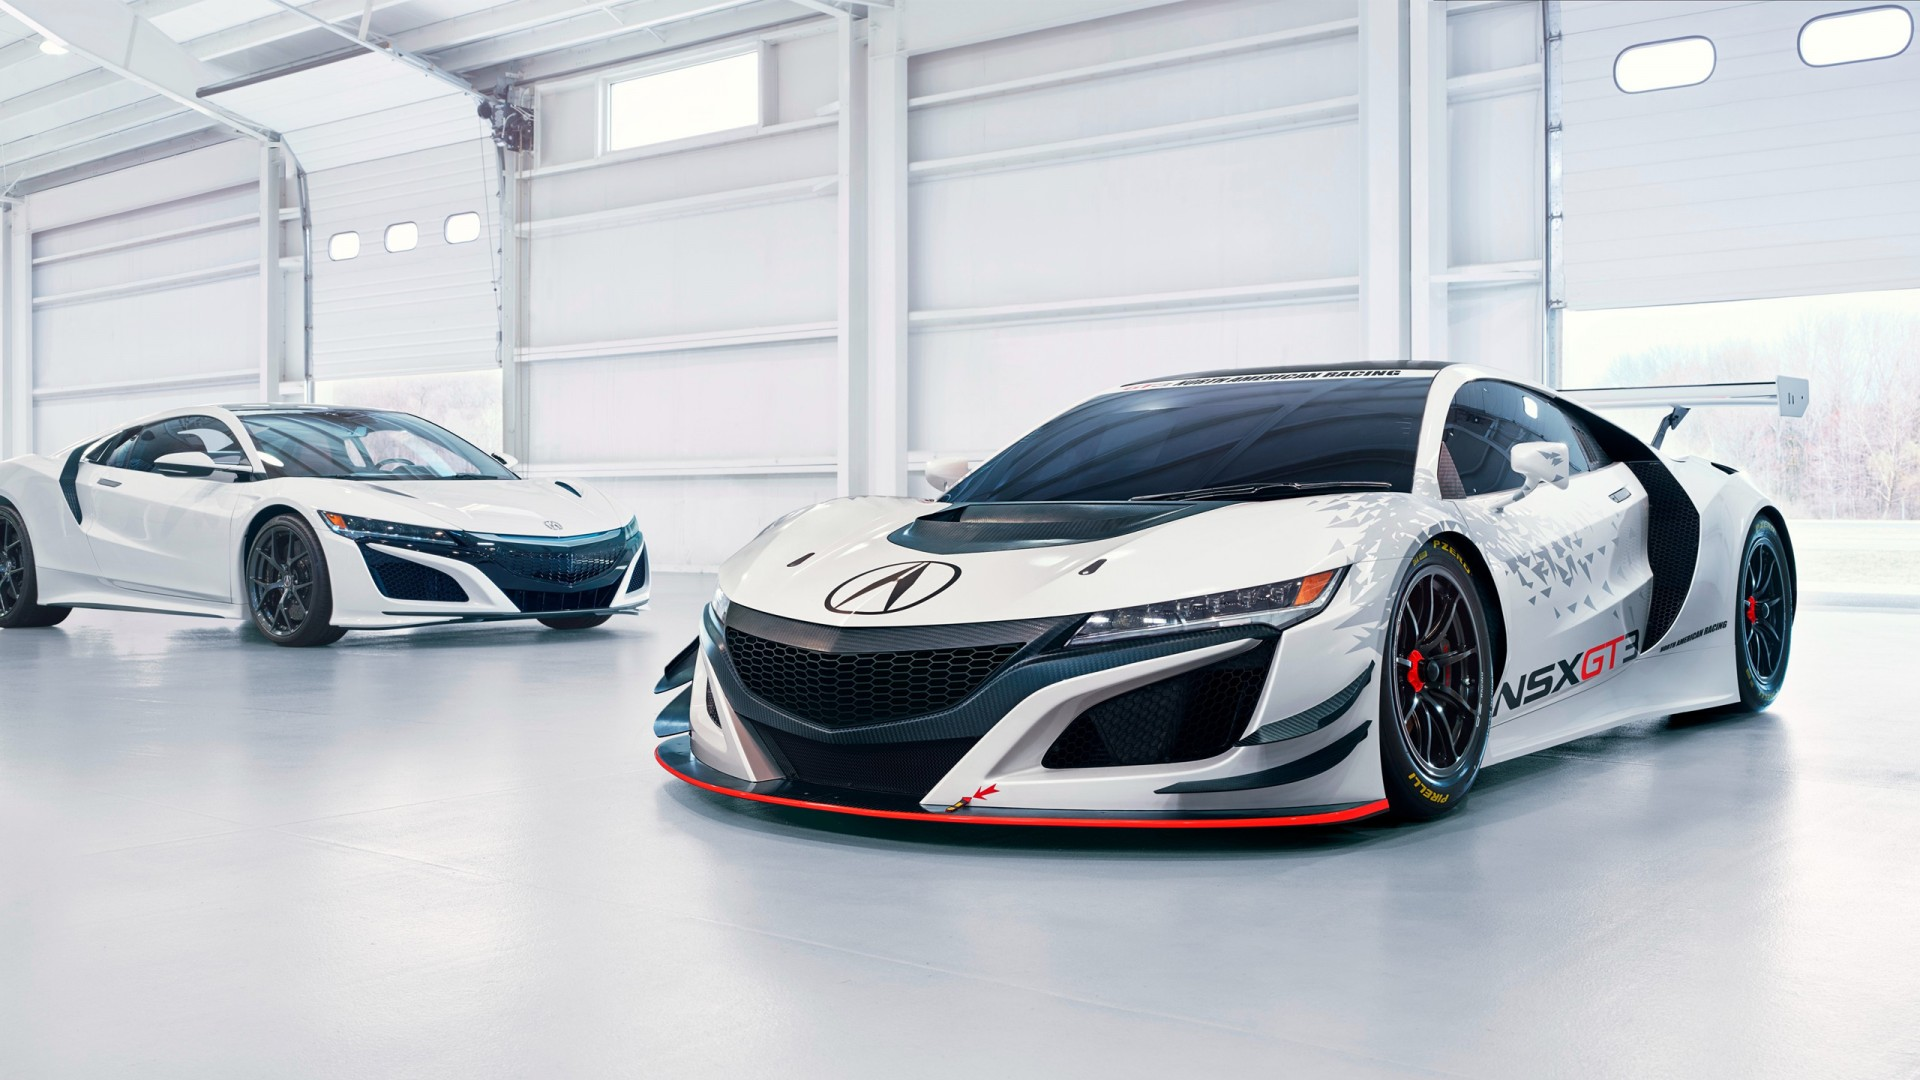 Acura Nsx Gt3 Wallpaper Hd Car Wallpapers